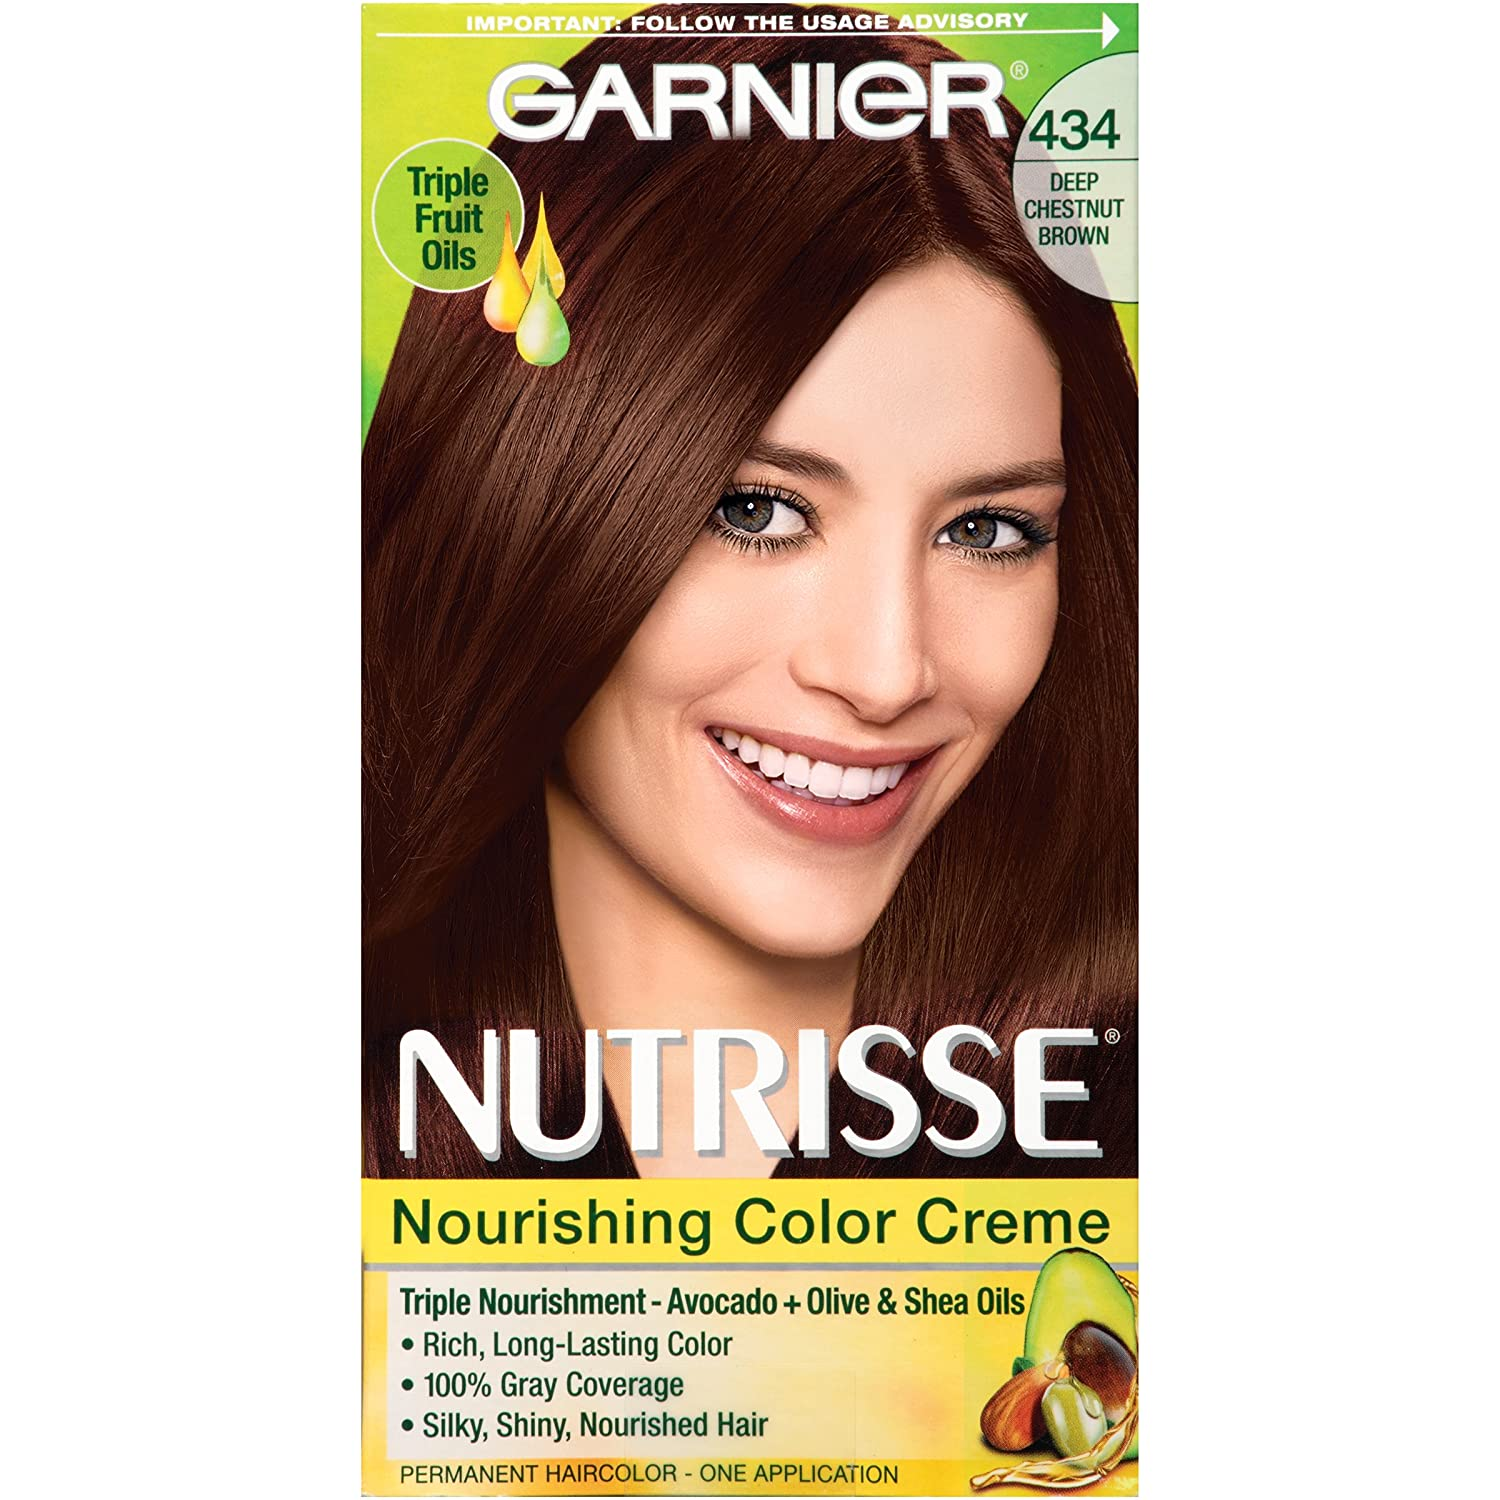 Five Quick Tips Regarding Chestnut Brown Hair Dye